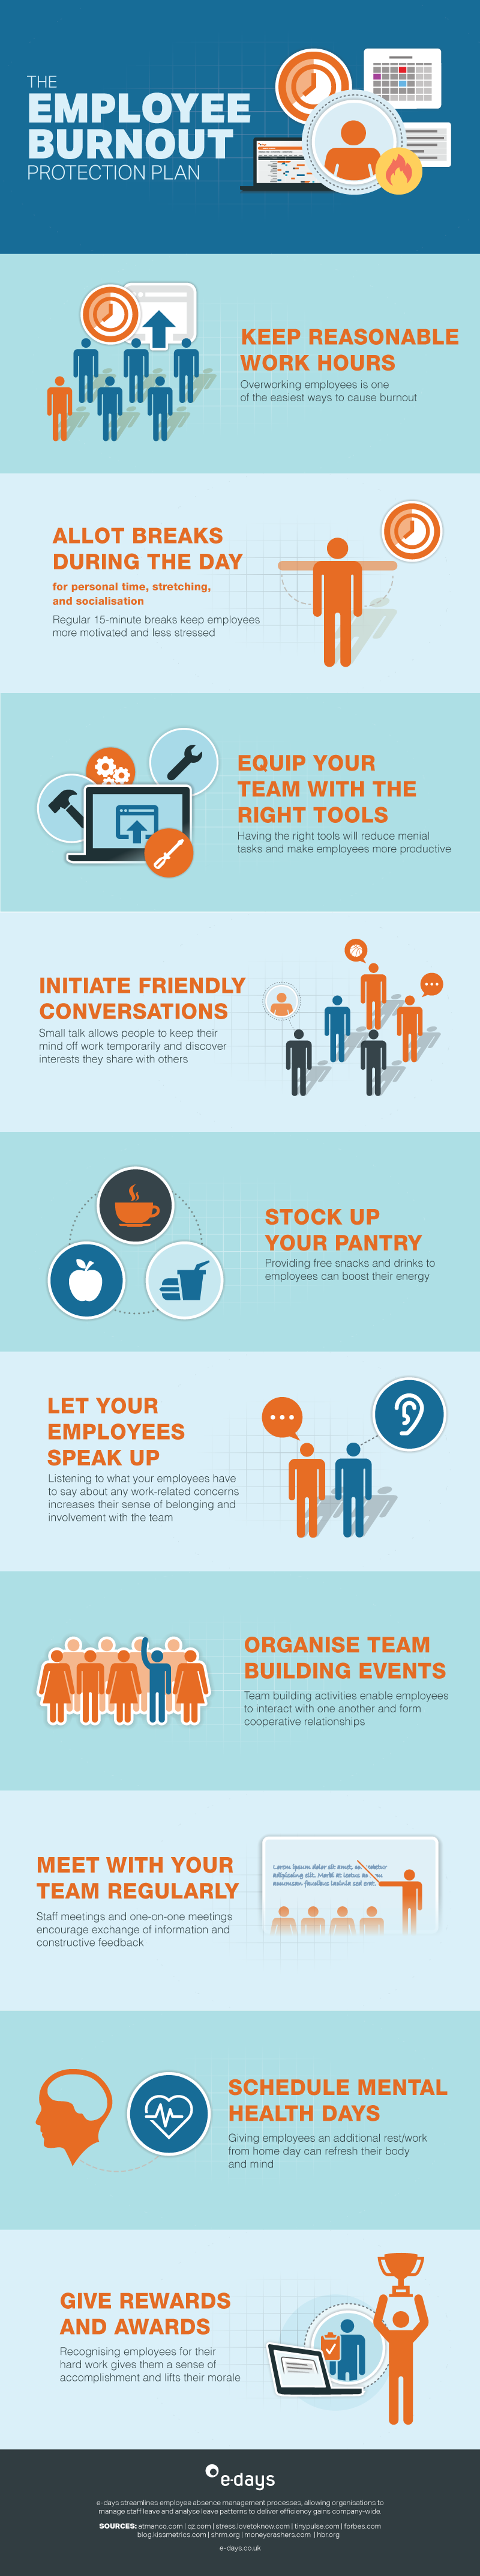 Employee Burnout Protection Plan [Infographic]